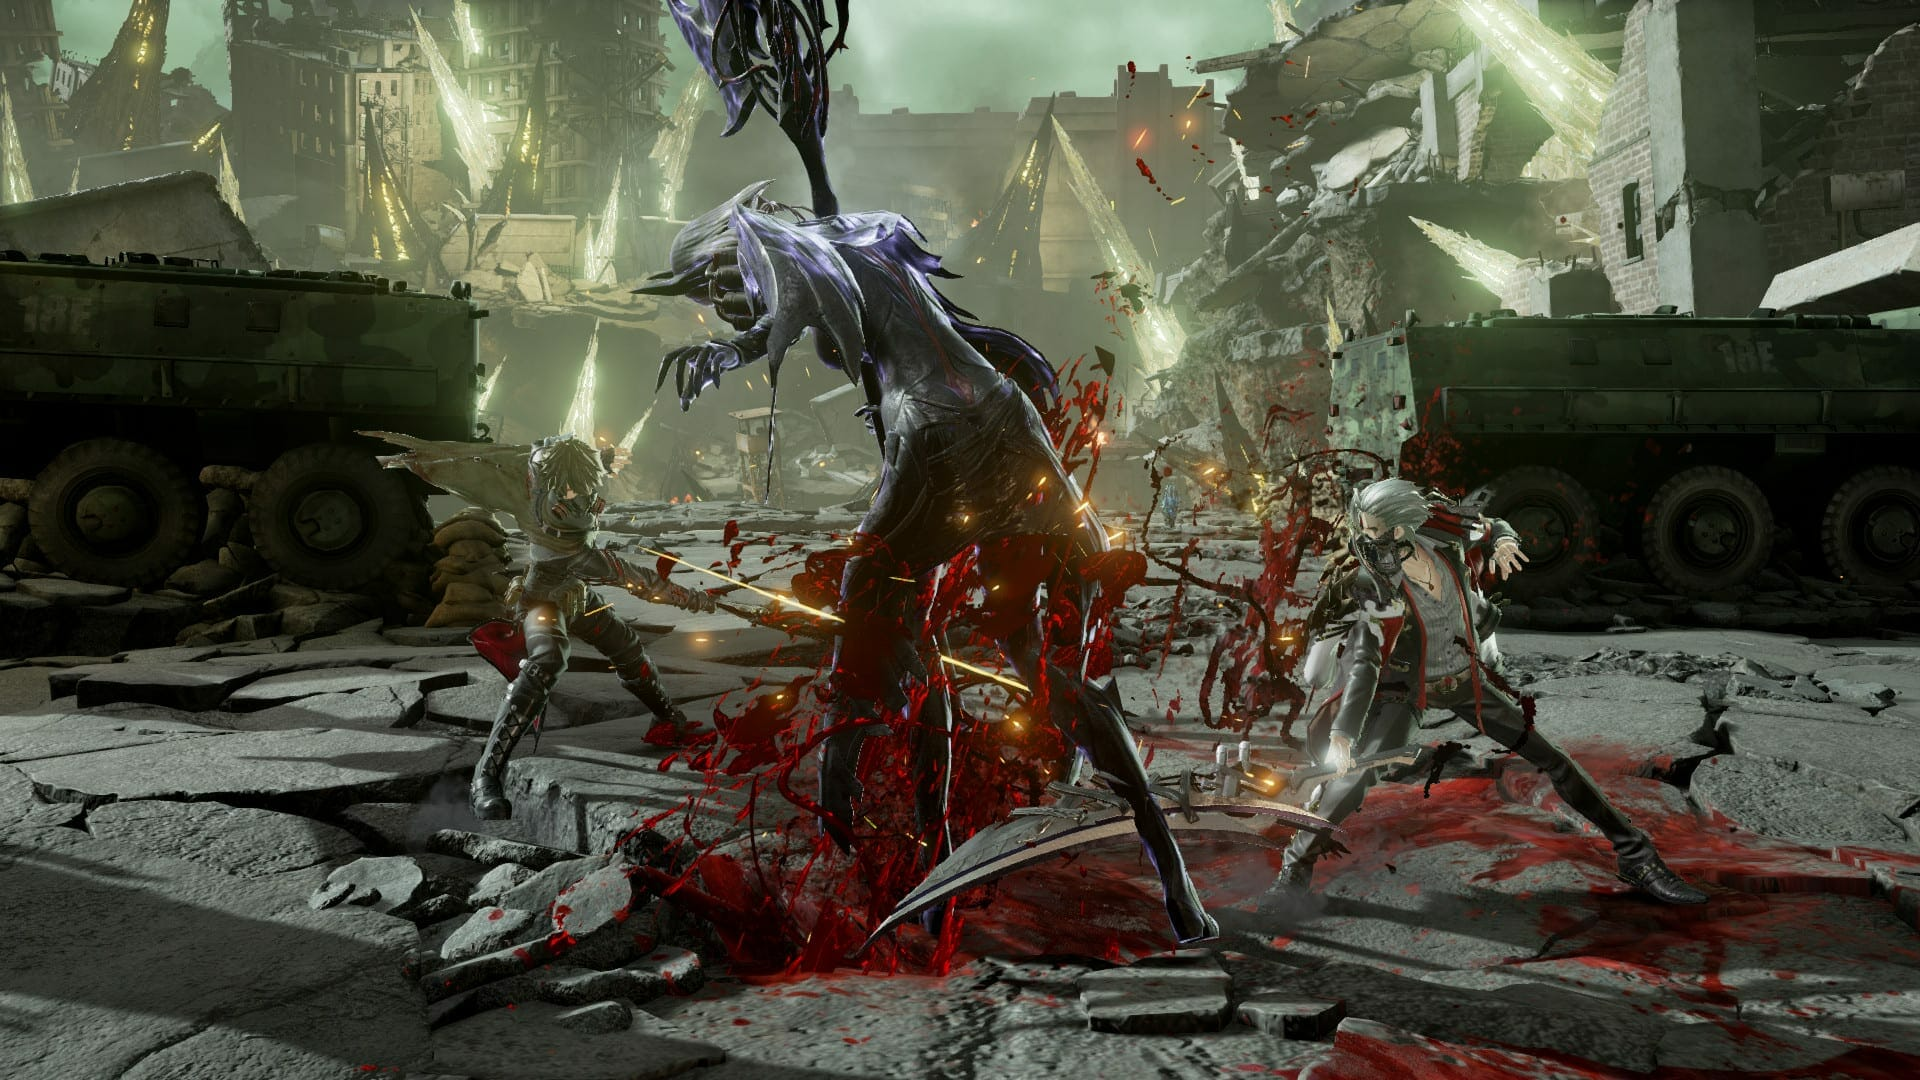 How To Disable Enable Code Vein Mouse Acceleration On Pc